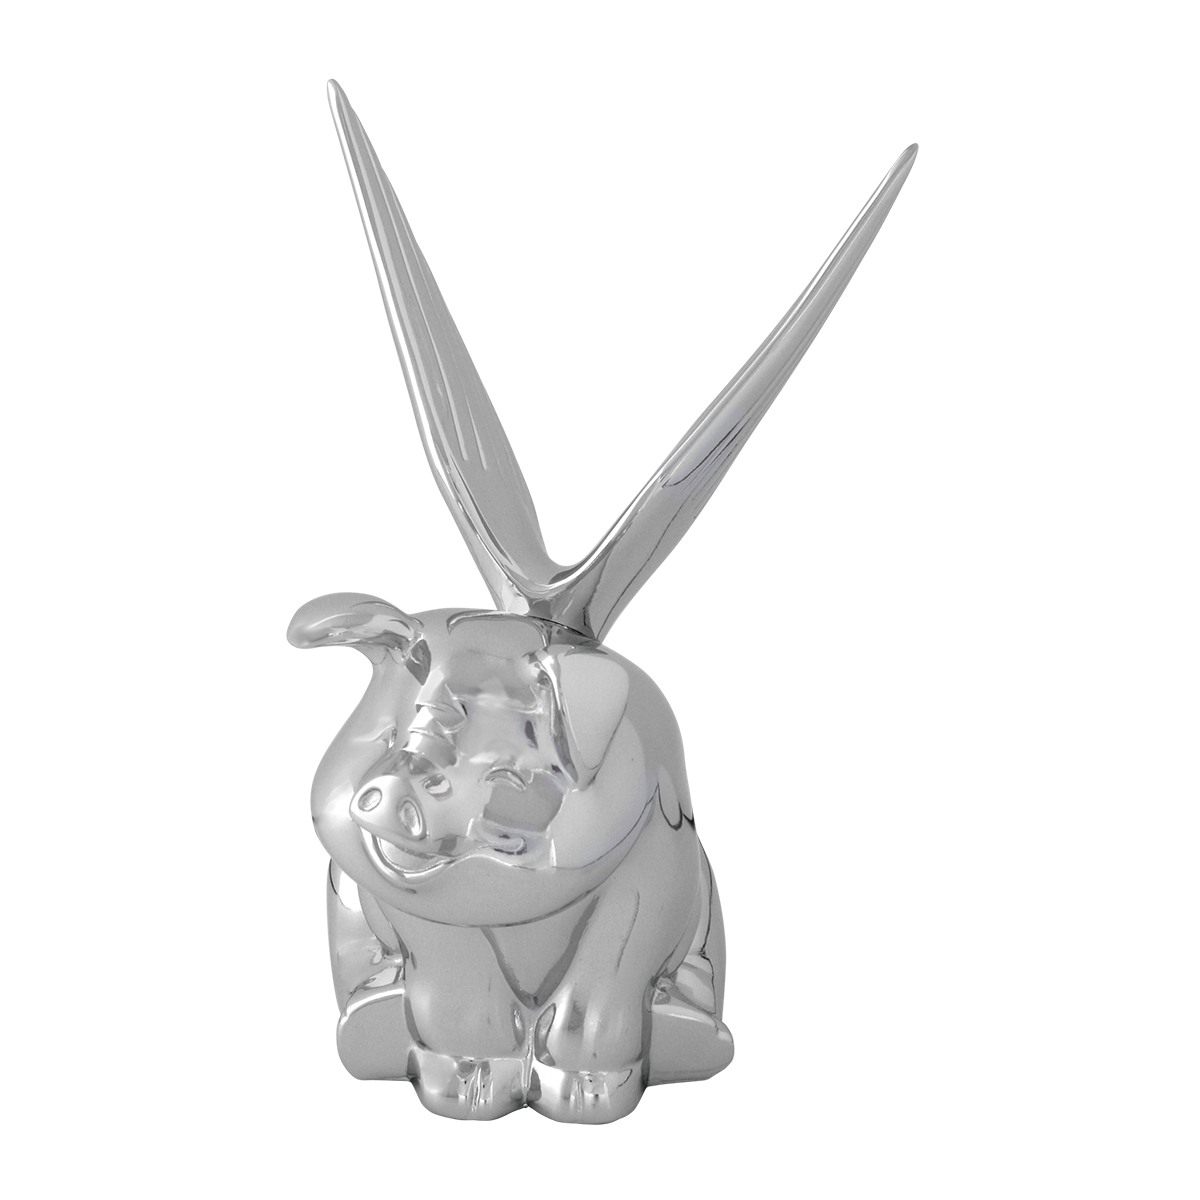 Chrome Die Cast Winged Pig Hood Ornament